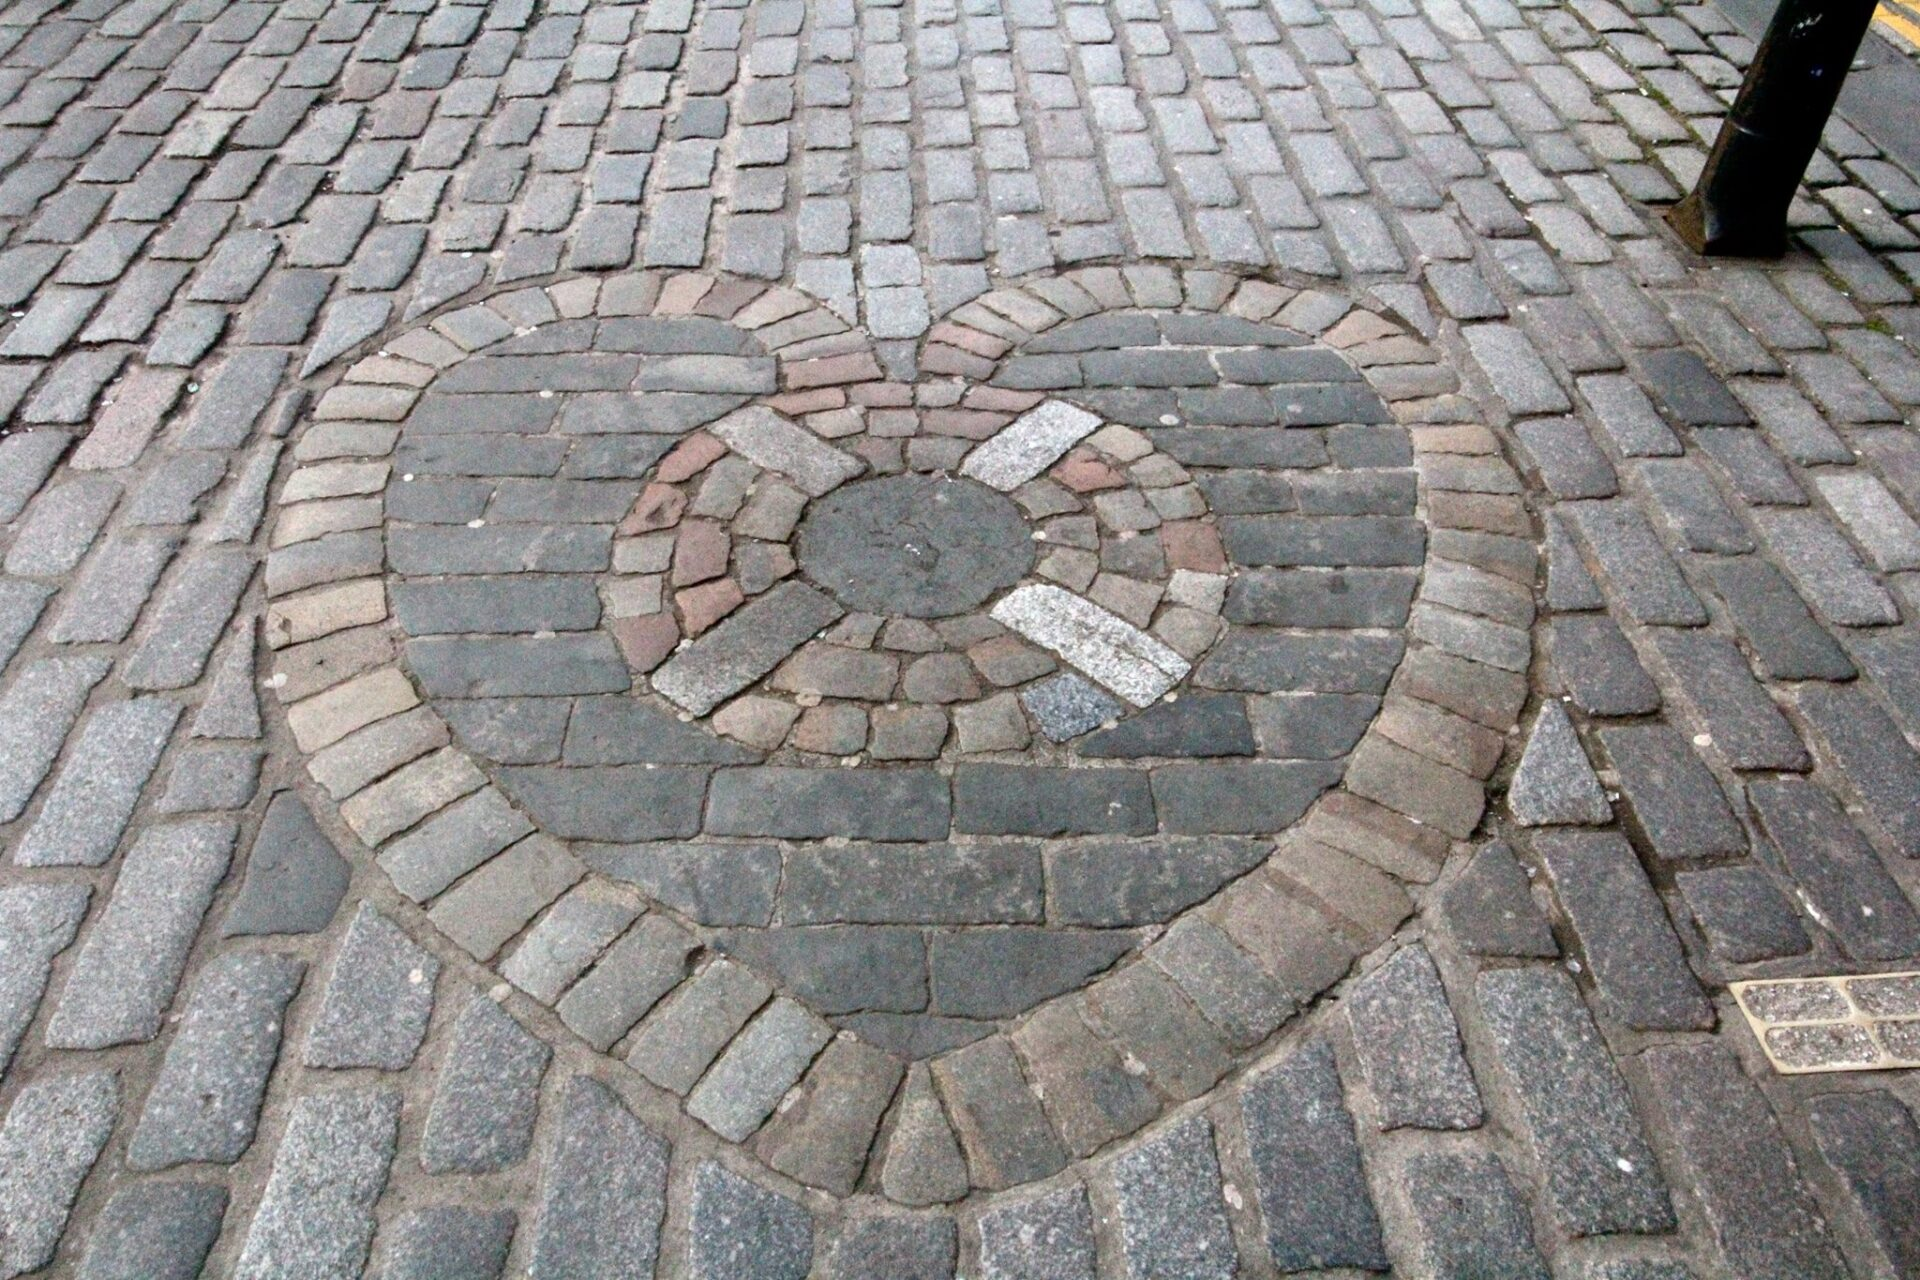 The Heart of Midlothian – quando cuore non significa amore